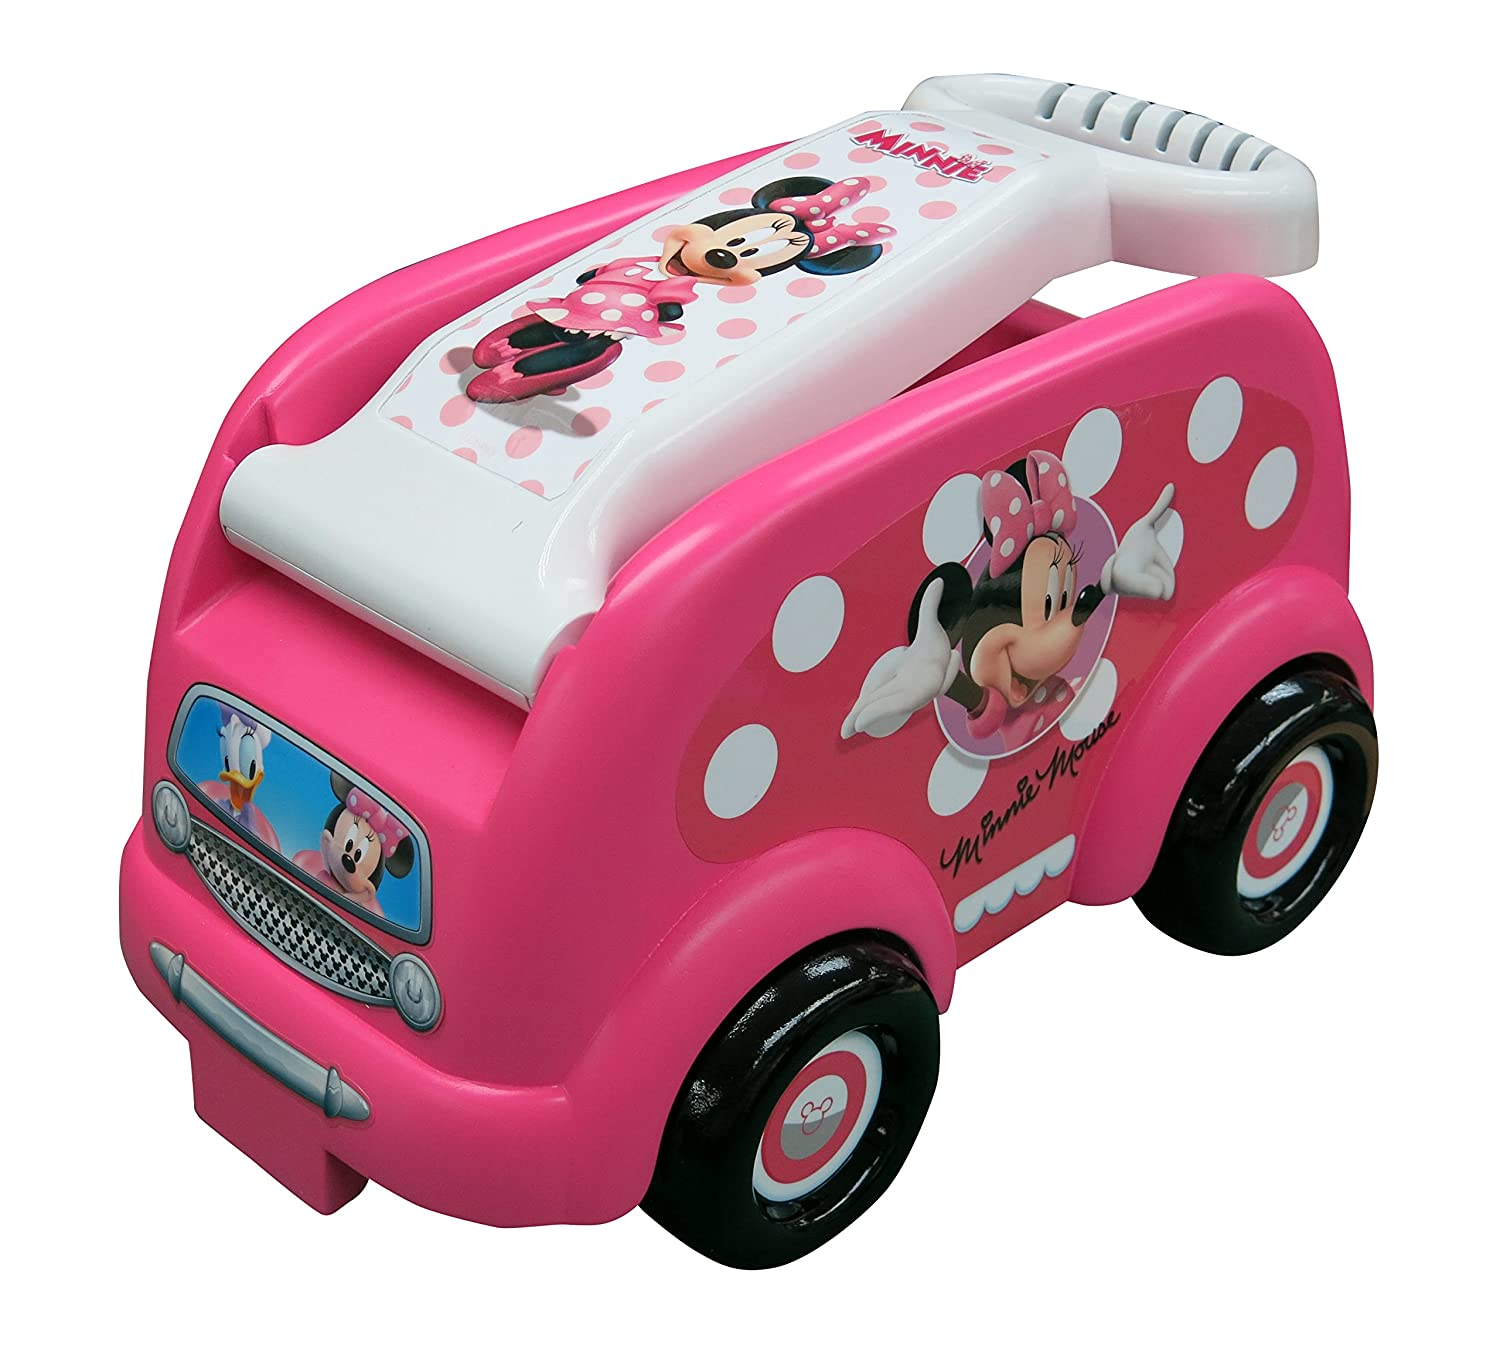 Minnie Disney Minnie Mouse Roll N Go Wagon Ride On